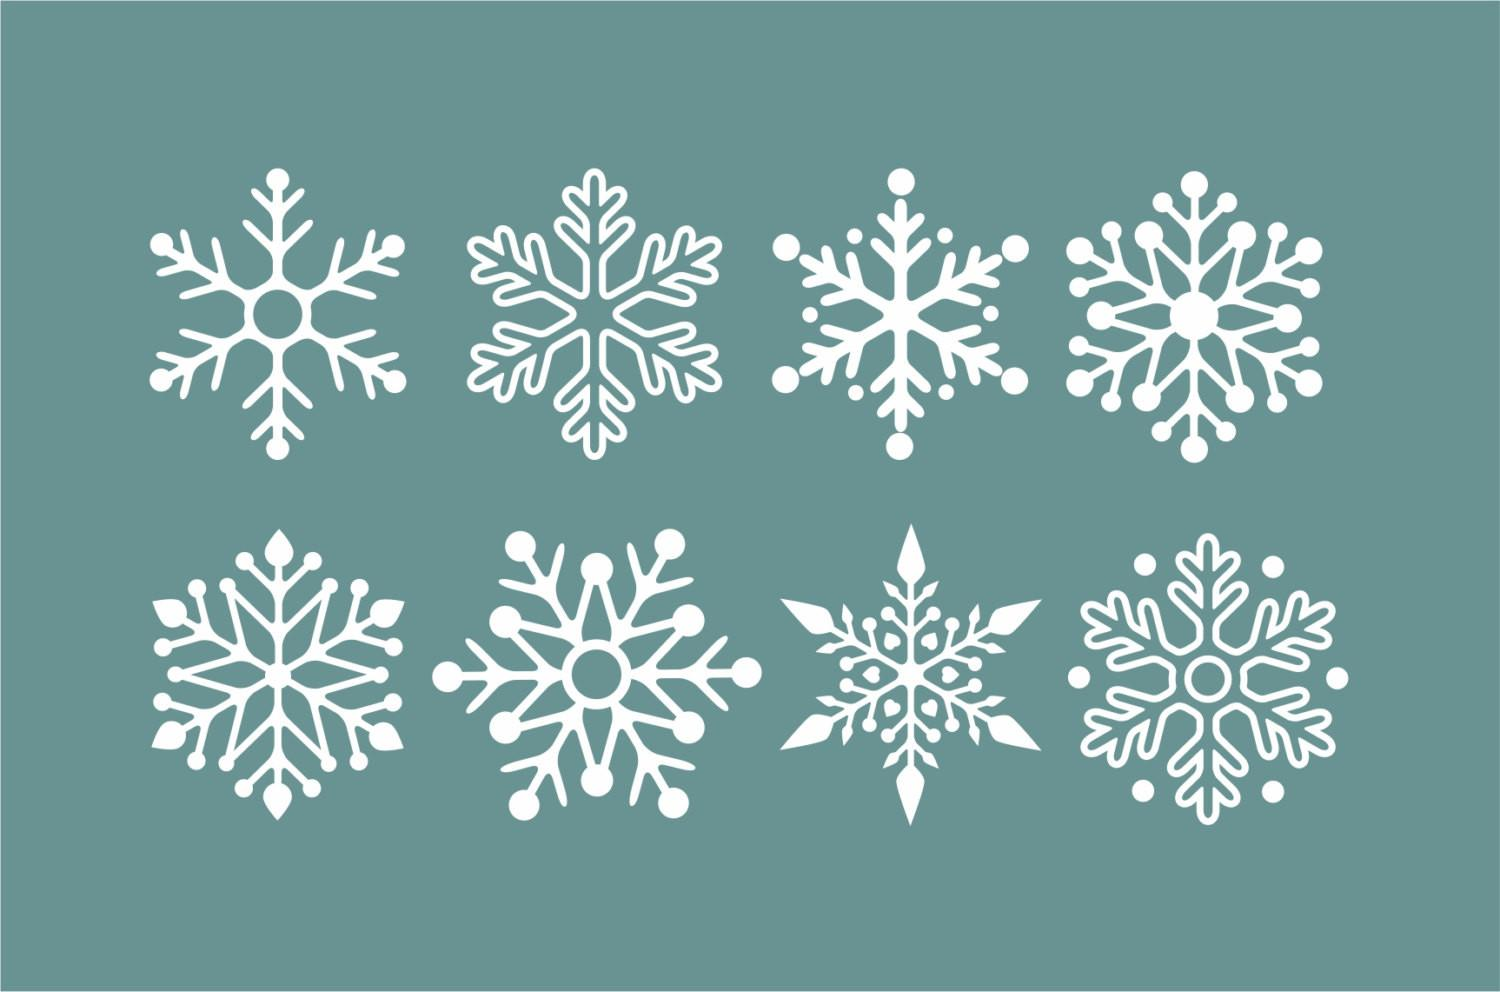 Snowflake Wall Decals Winter Holiday Decorations Snow Flake